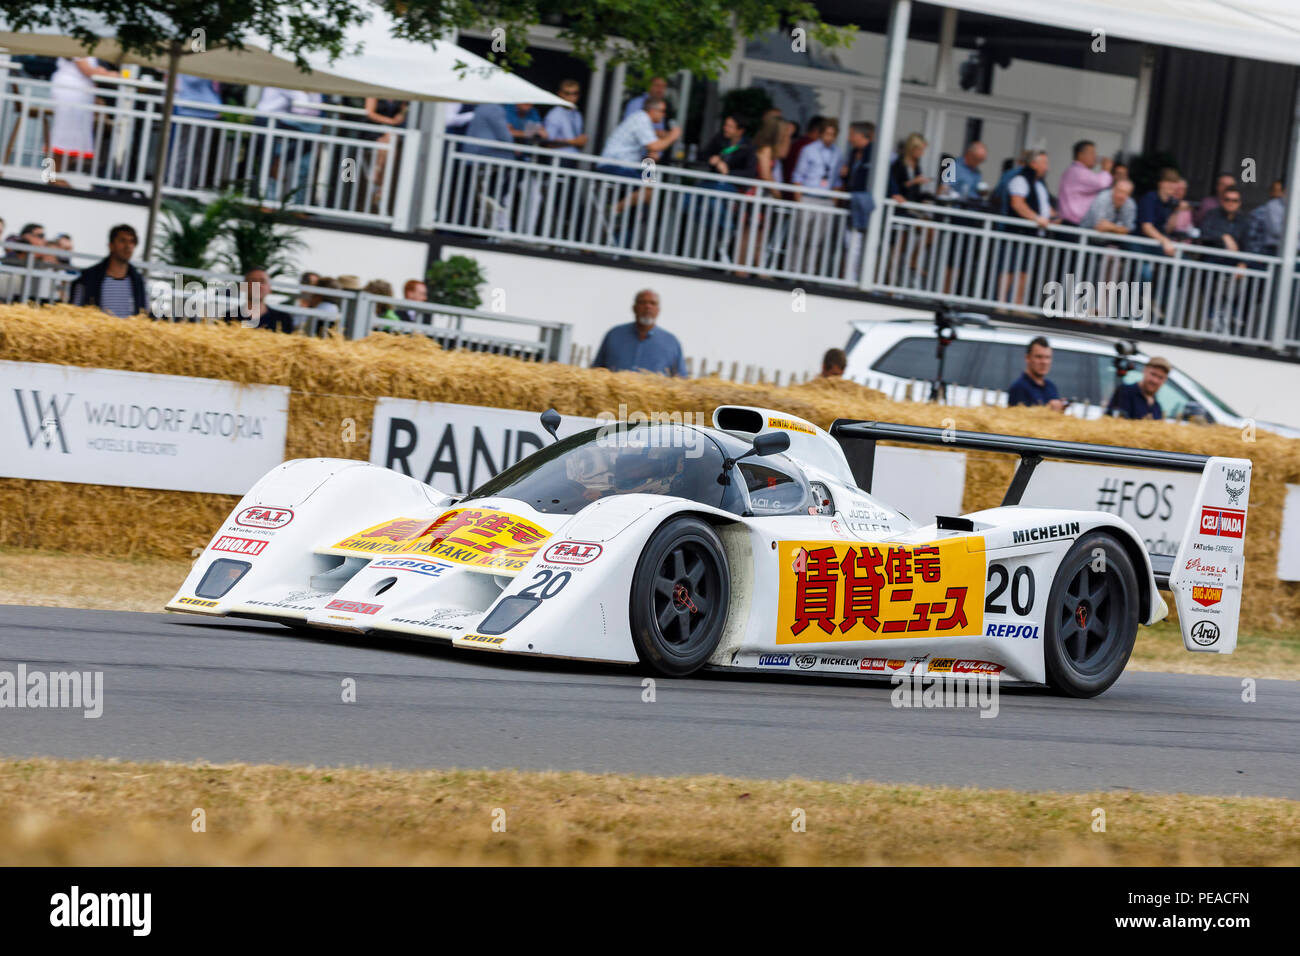 1992 Lola-Judd T92/10 Group C racer with driver Peter Garrod at the 2018 Goodwood Festival of Speed, Sussex, UK. Stock Photo